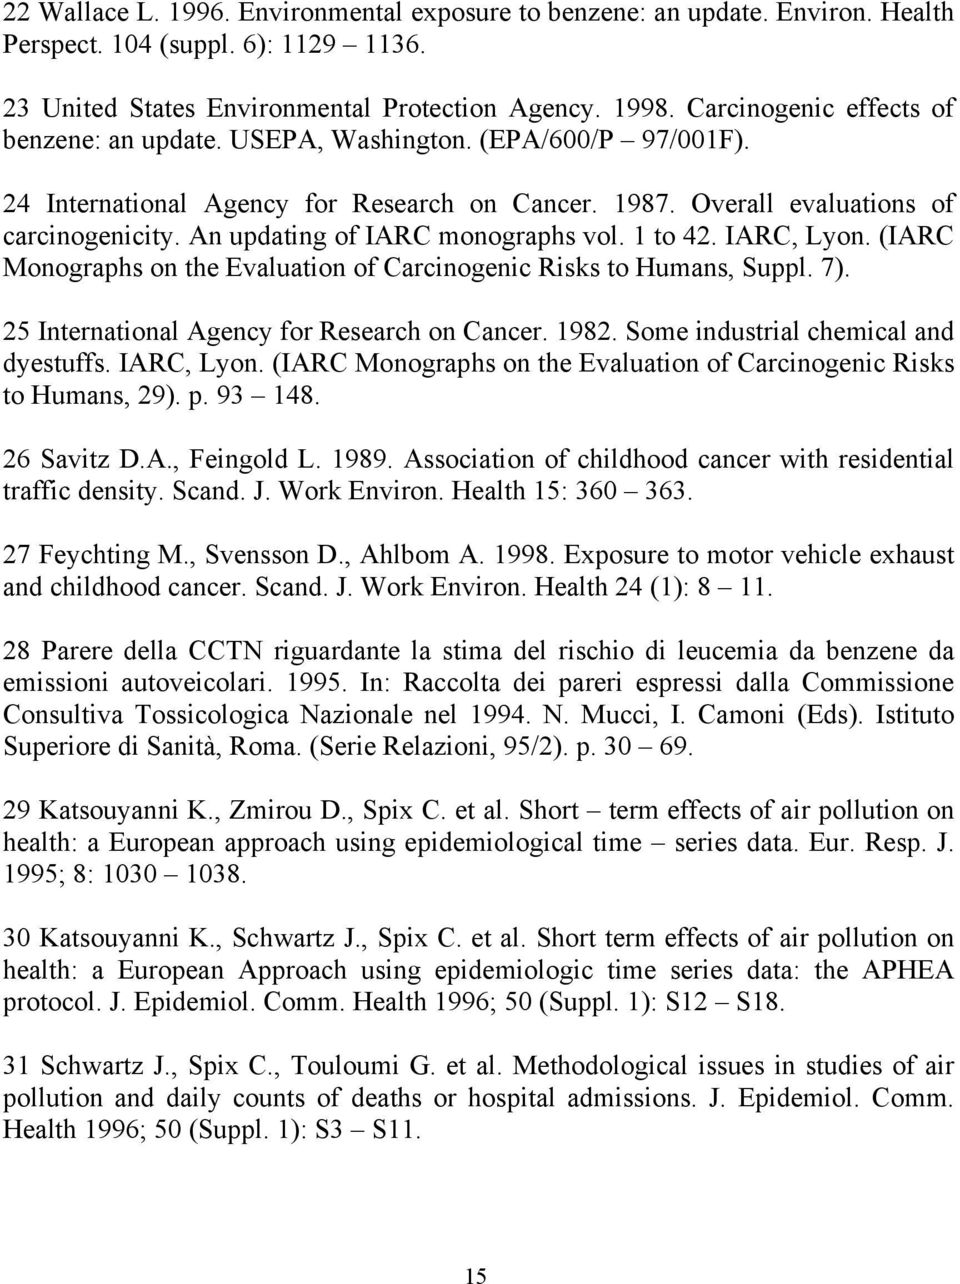 An updating of IARC monographs vol. 1 to 42. IARC, Lyon. (IARC Monographs on the Evaluation of Carcinogenic Risks to Humans, Suppl. 7). 25 International Agency for Research on Cancer. 1982.